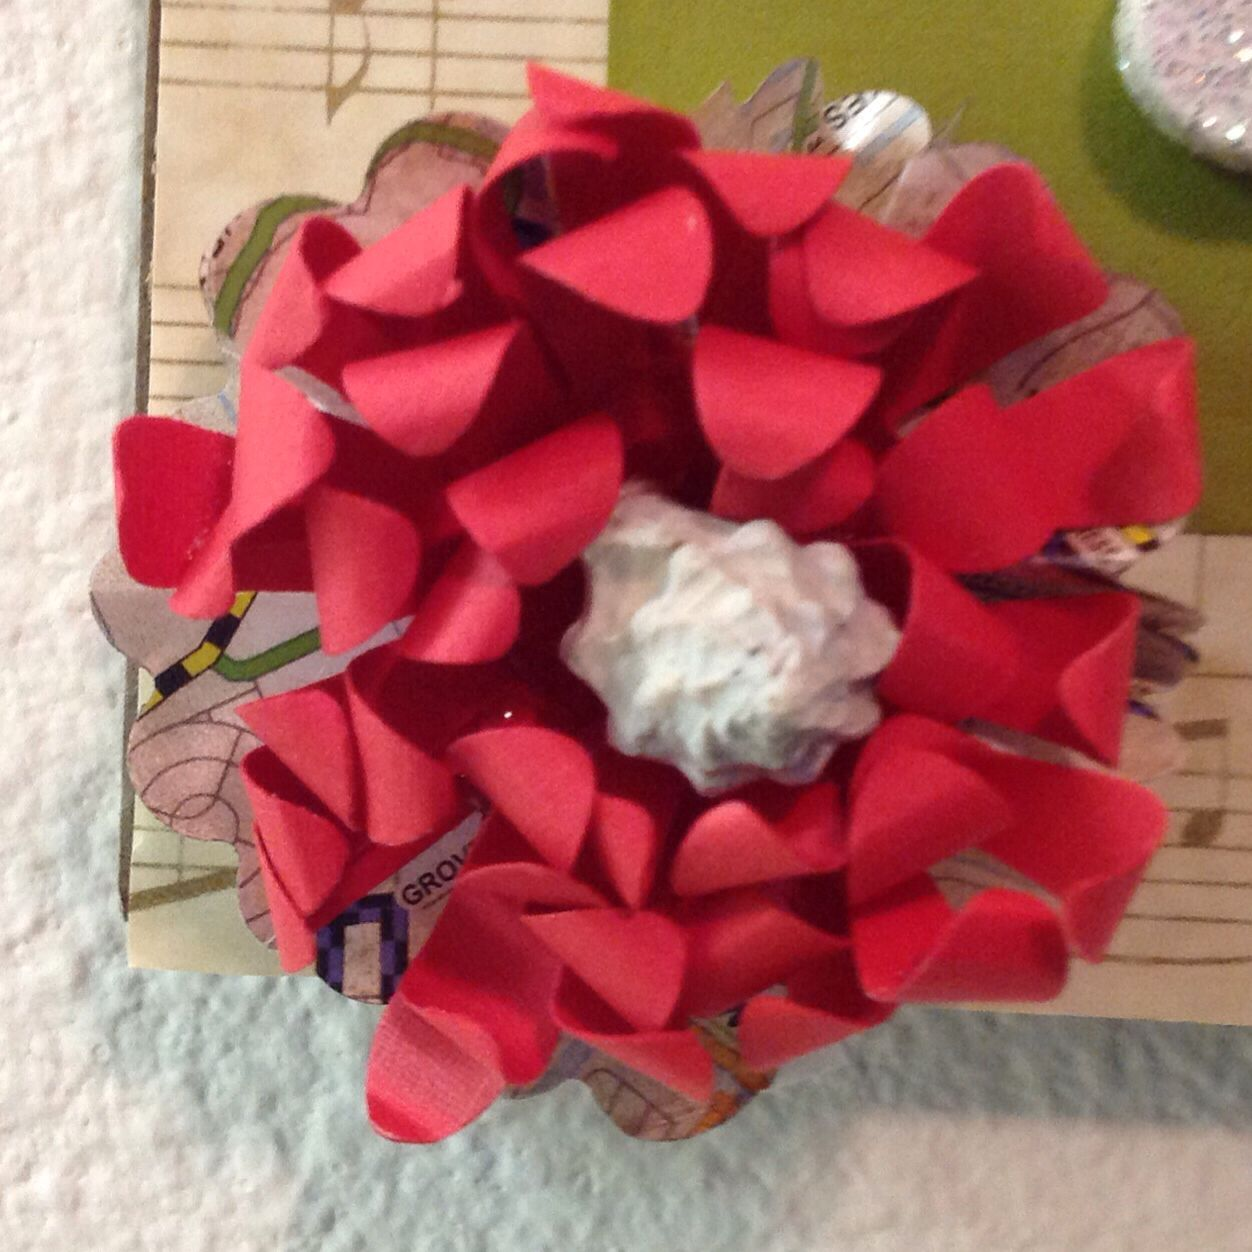 Homemade paper flower with shell center by coletta musick art homemade paper flower with shell center by coletta musick mightylinksfo